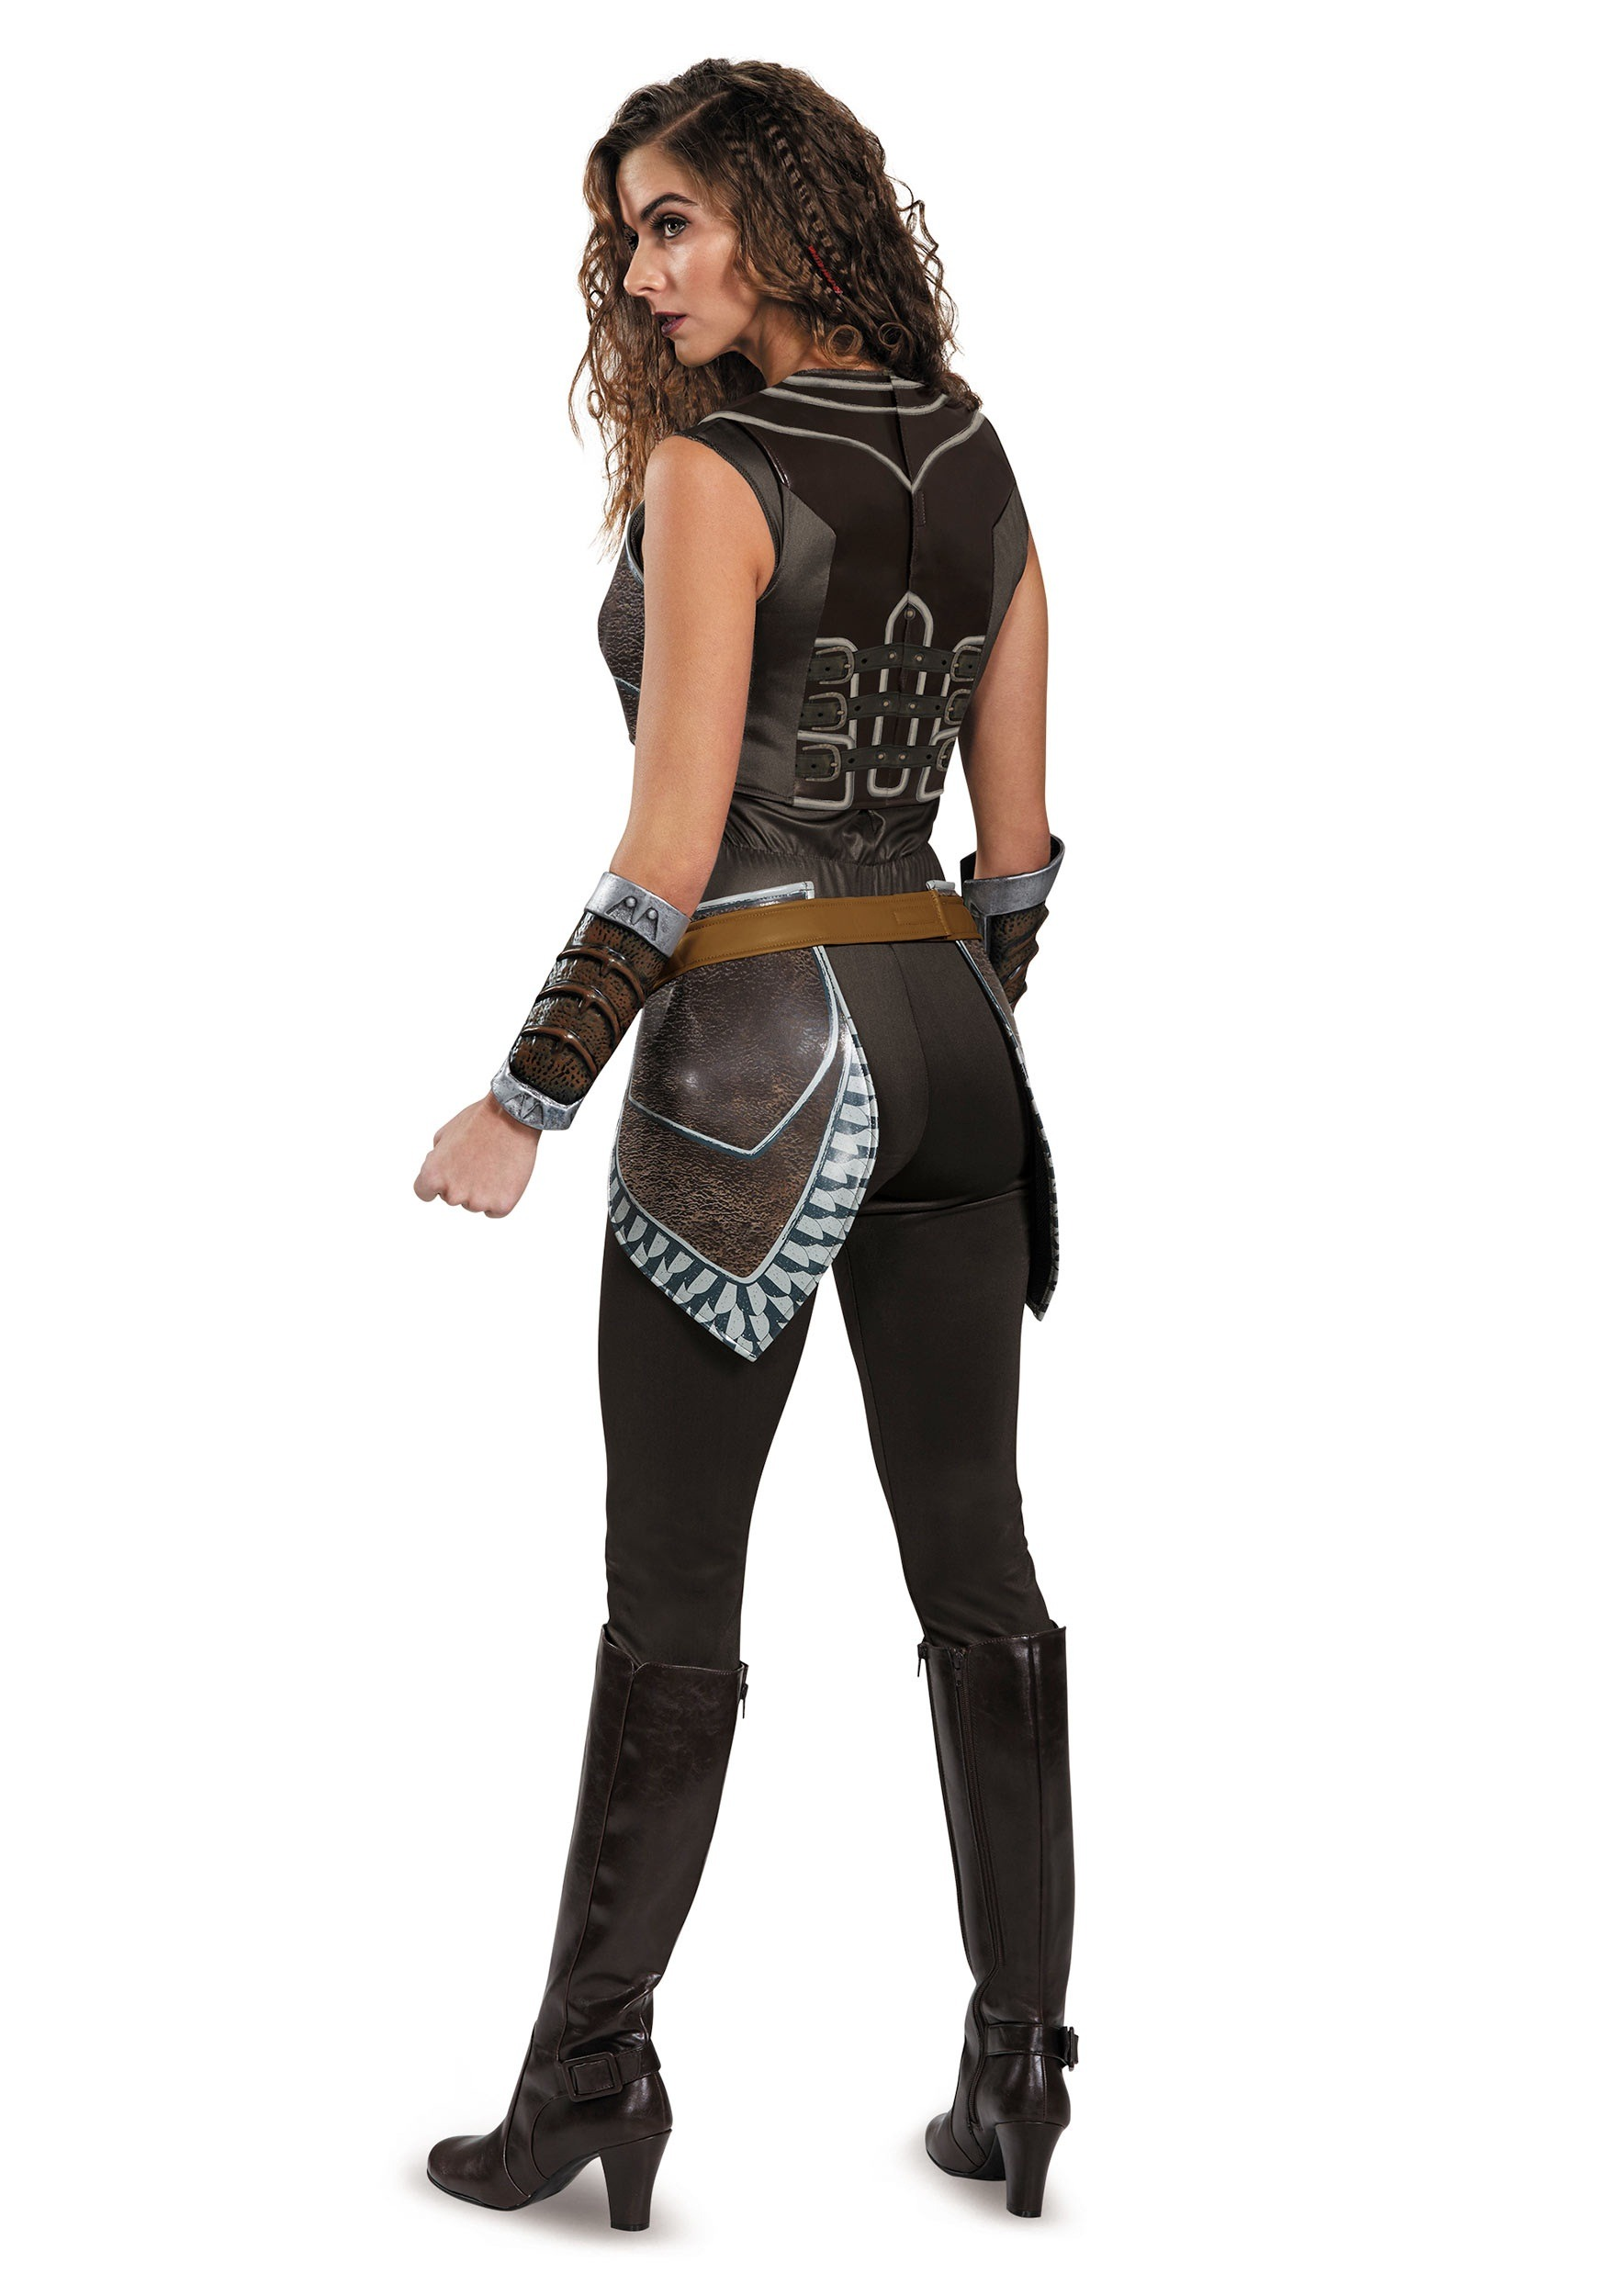 Halloween outdoor decorations pinterest - Adult Garona Deluxe Costume